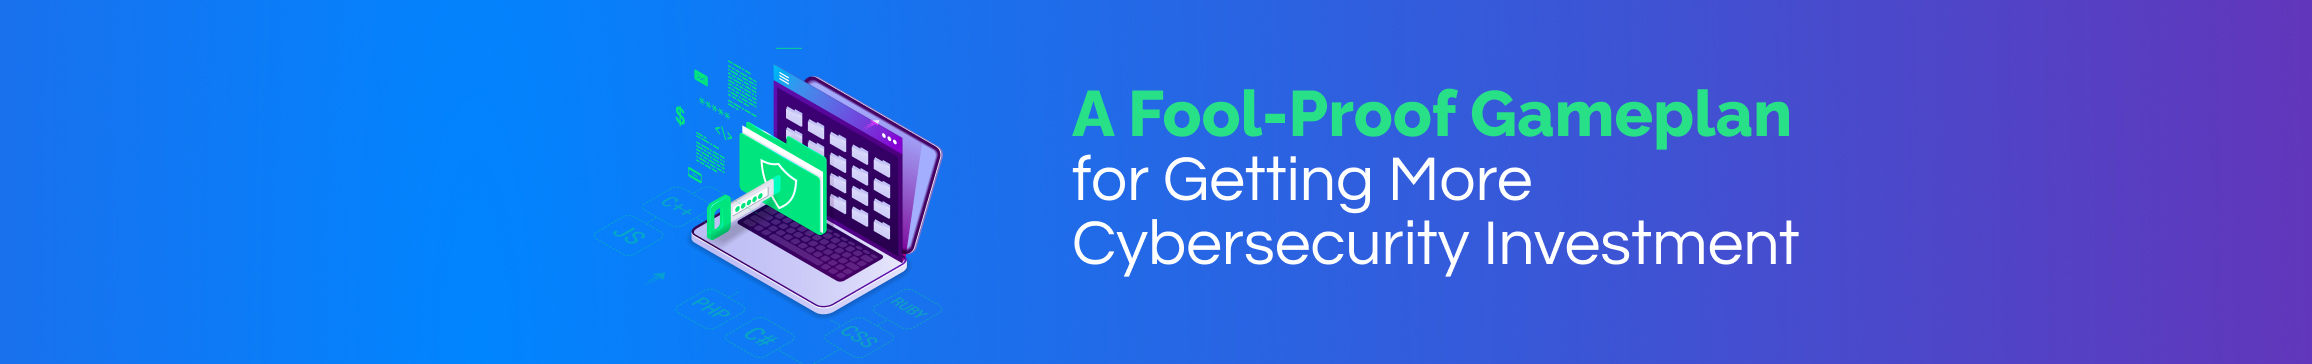 A Fool-Proof Game Plan for Getting More Cybersecurity Investment